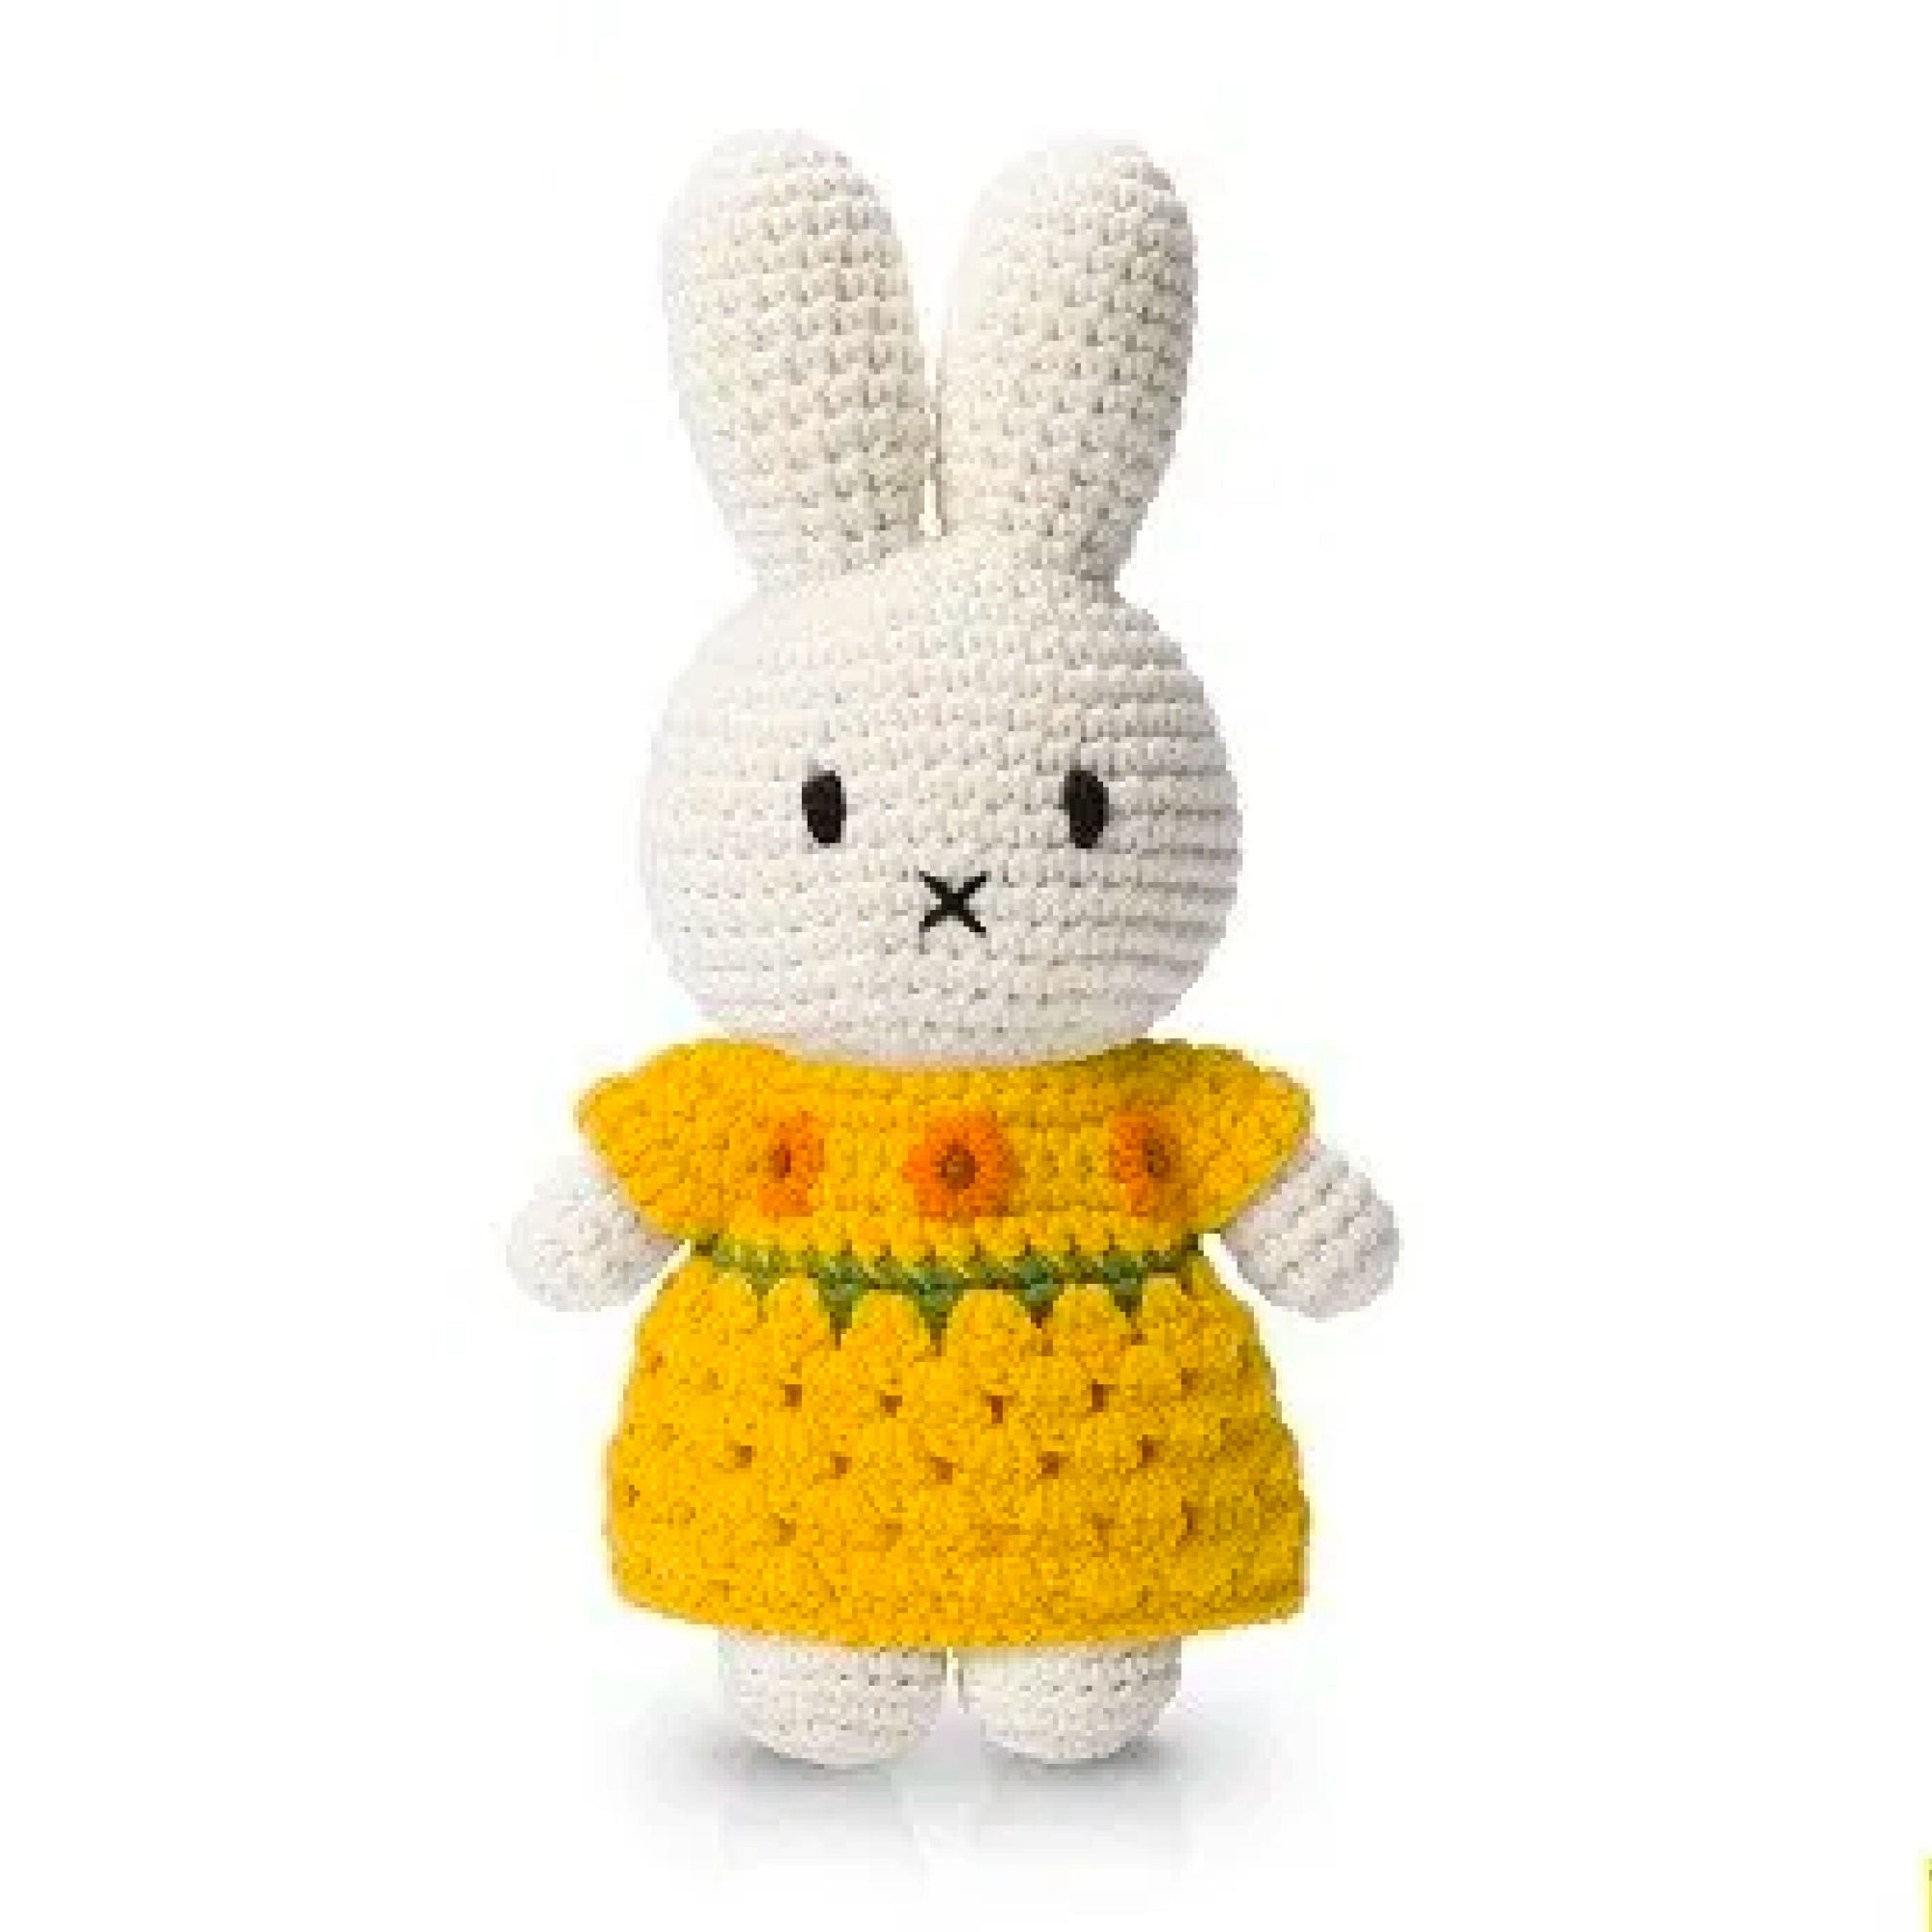 Just Dutch Miffy & Her New Sunflower Dress